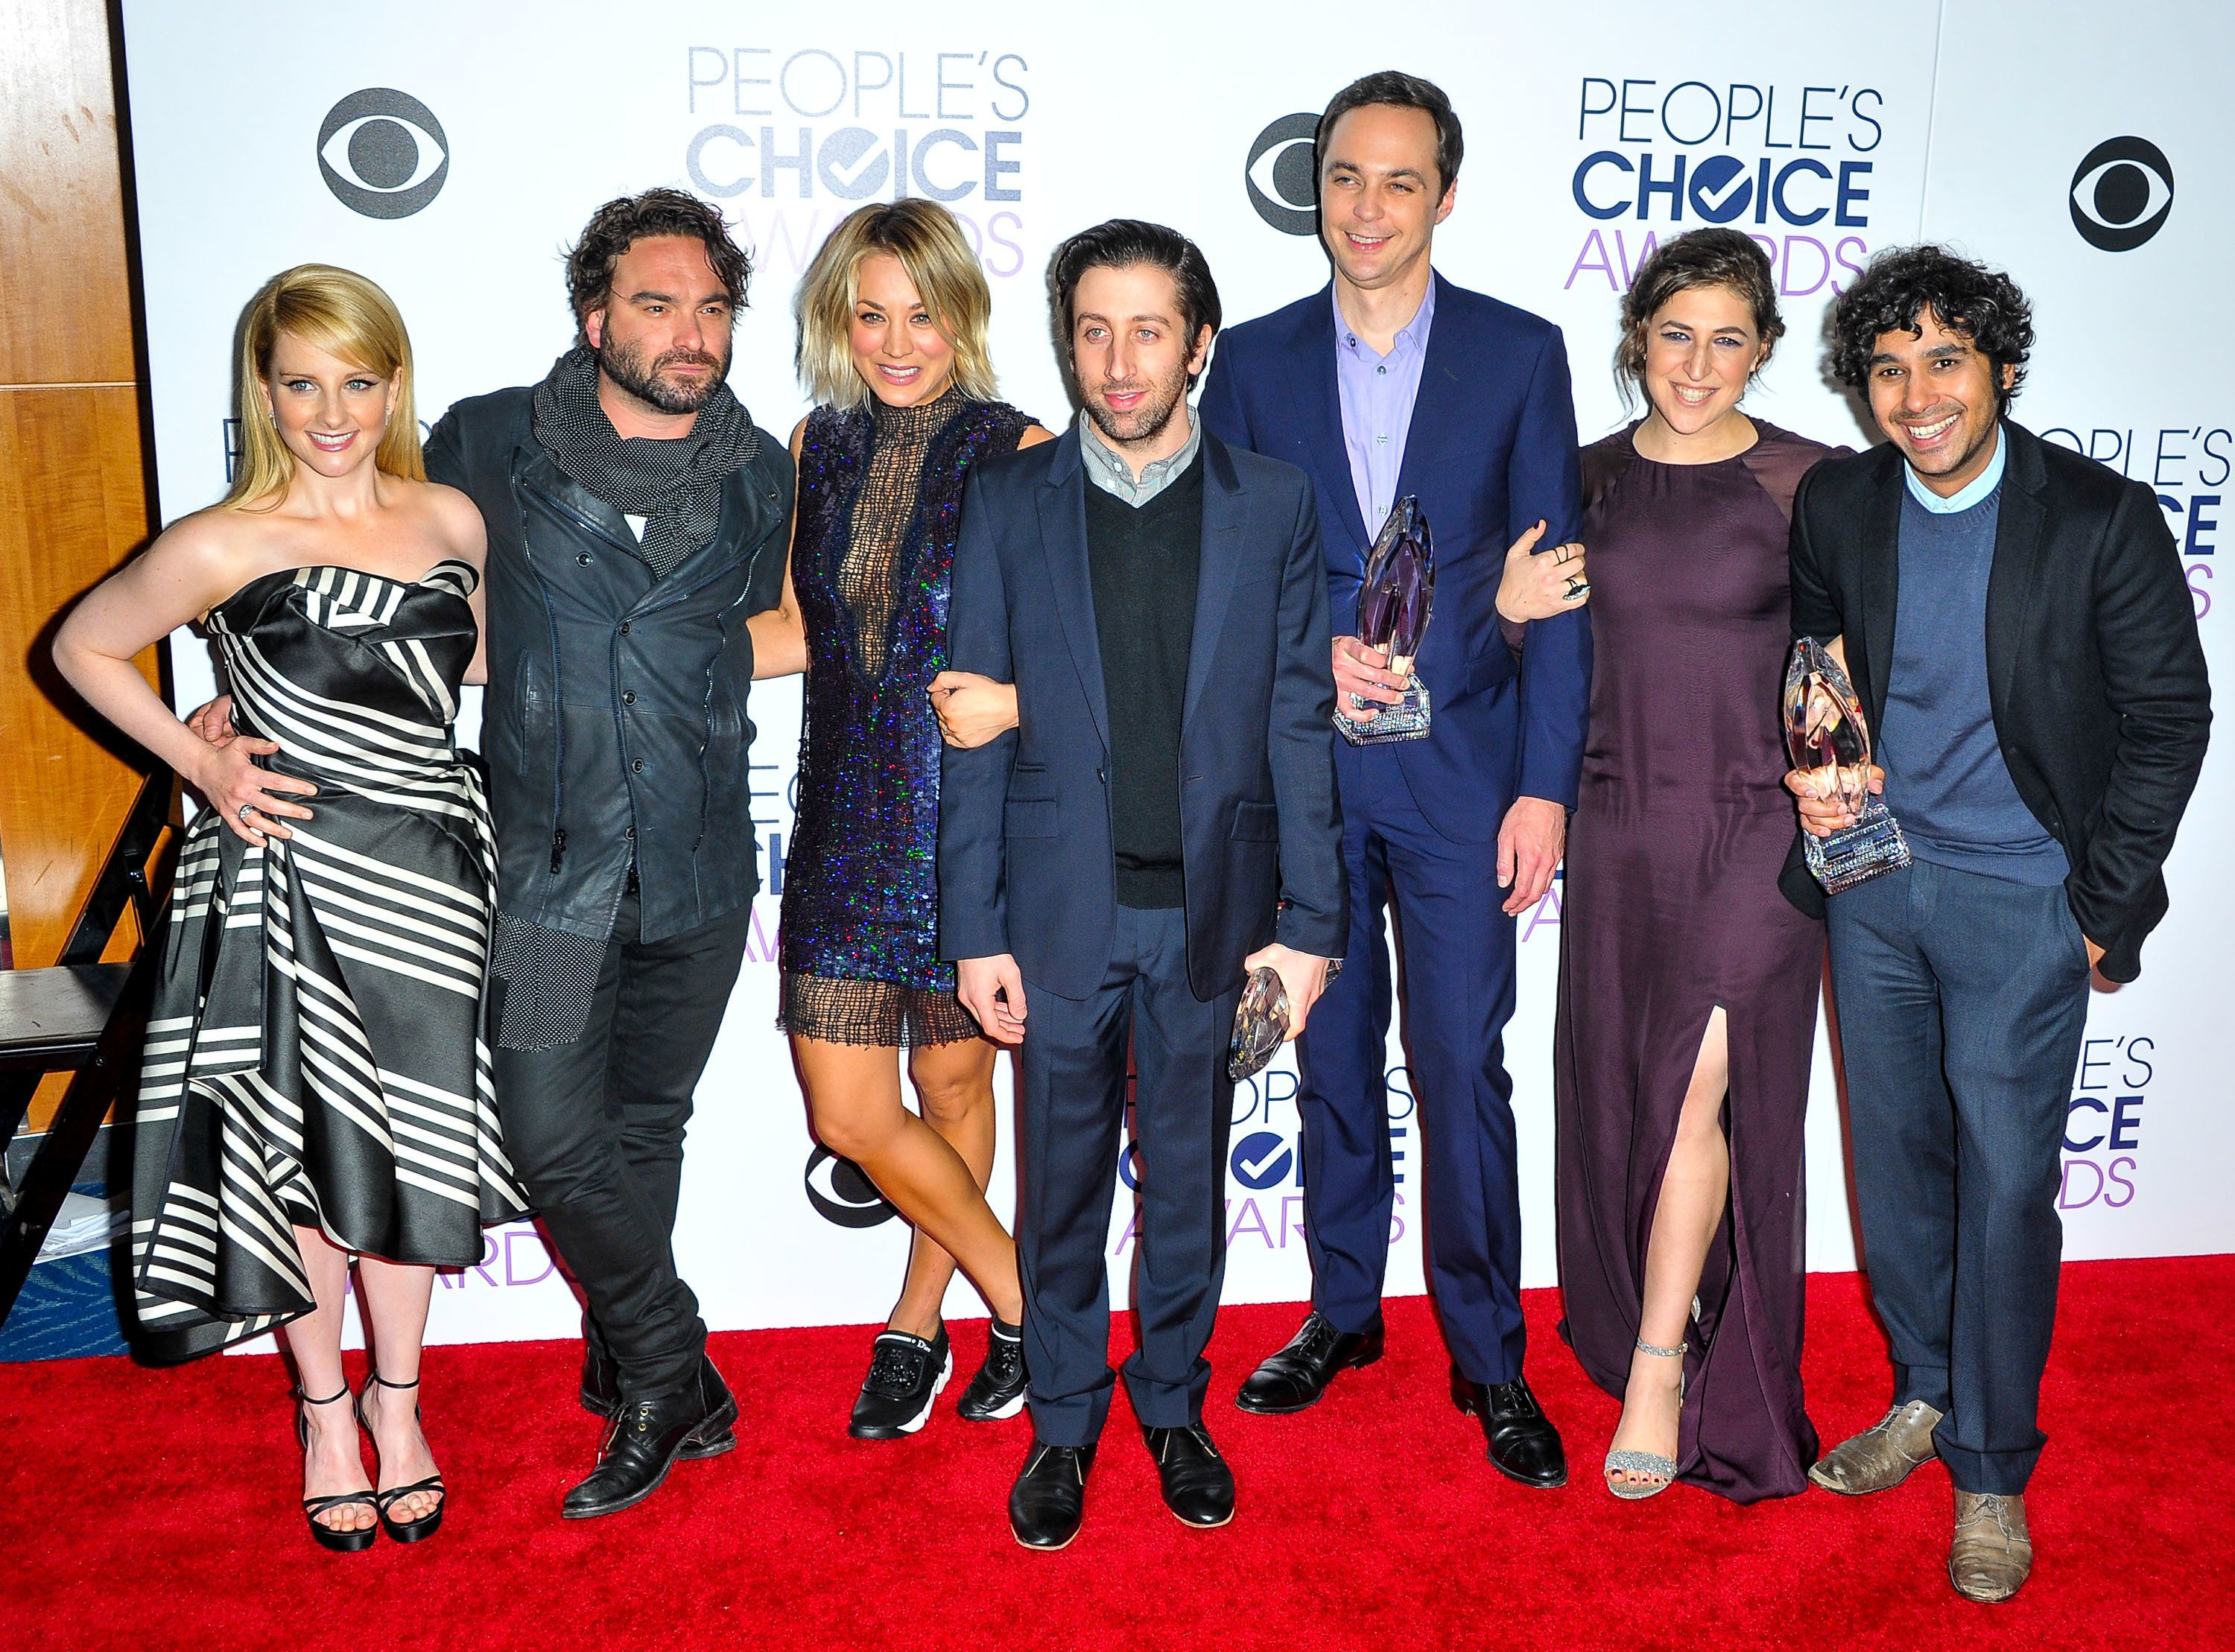 'Big Bang Theory' Leads Taking Pay Cuts So Female Co-Stars Can Get